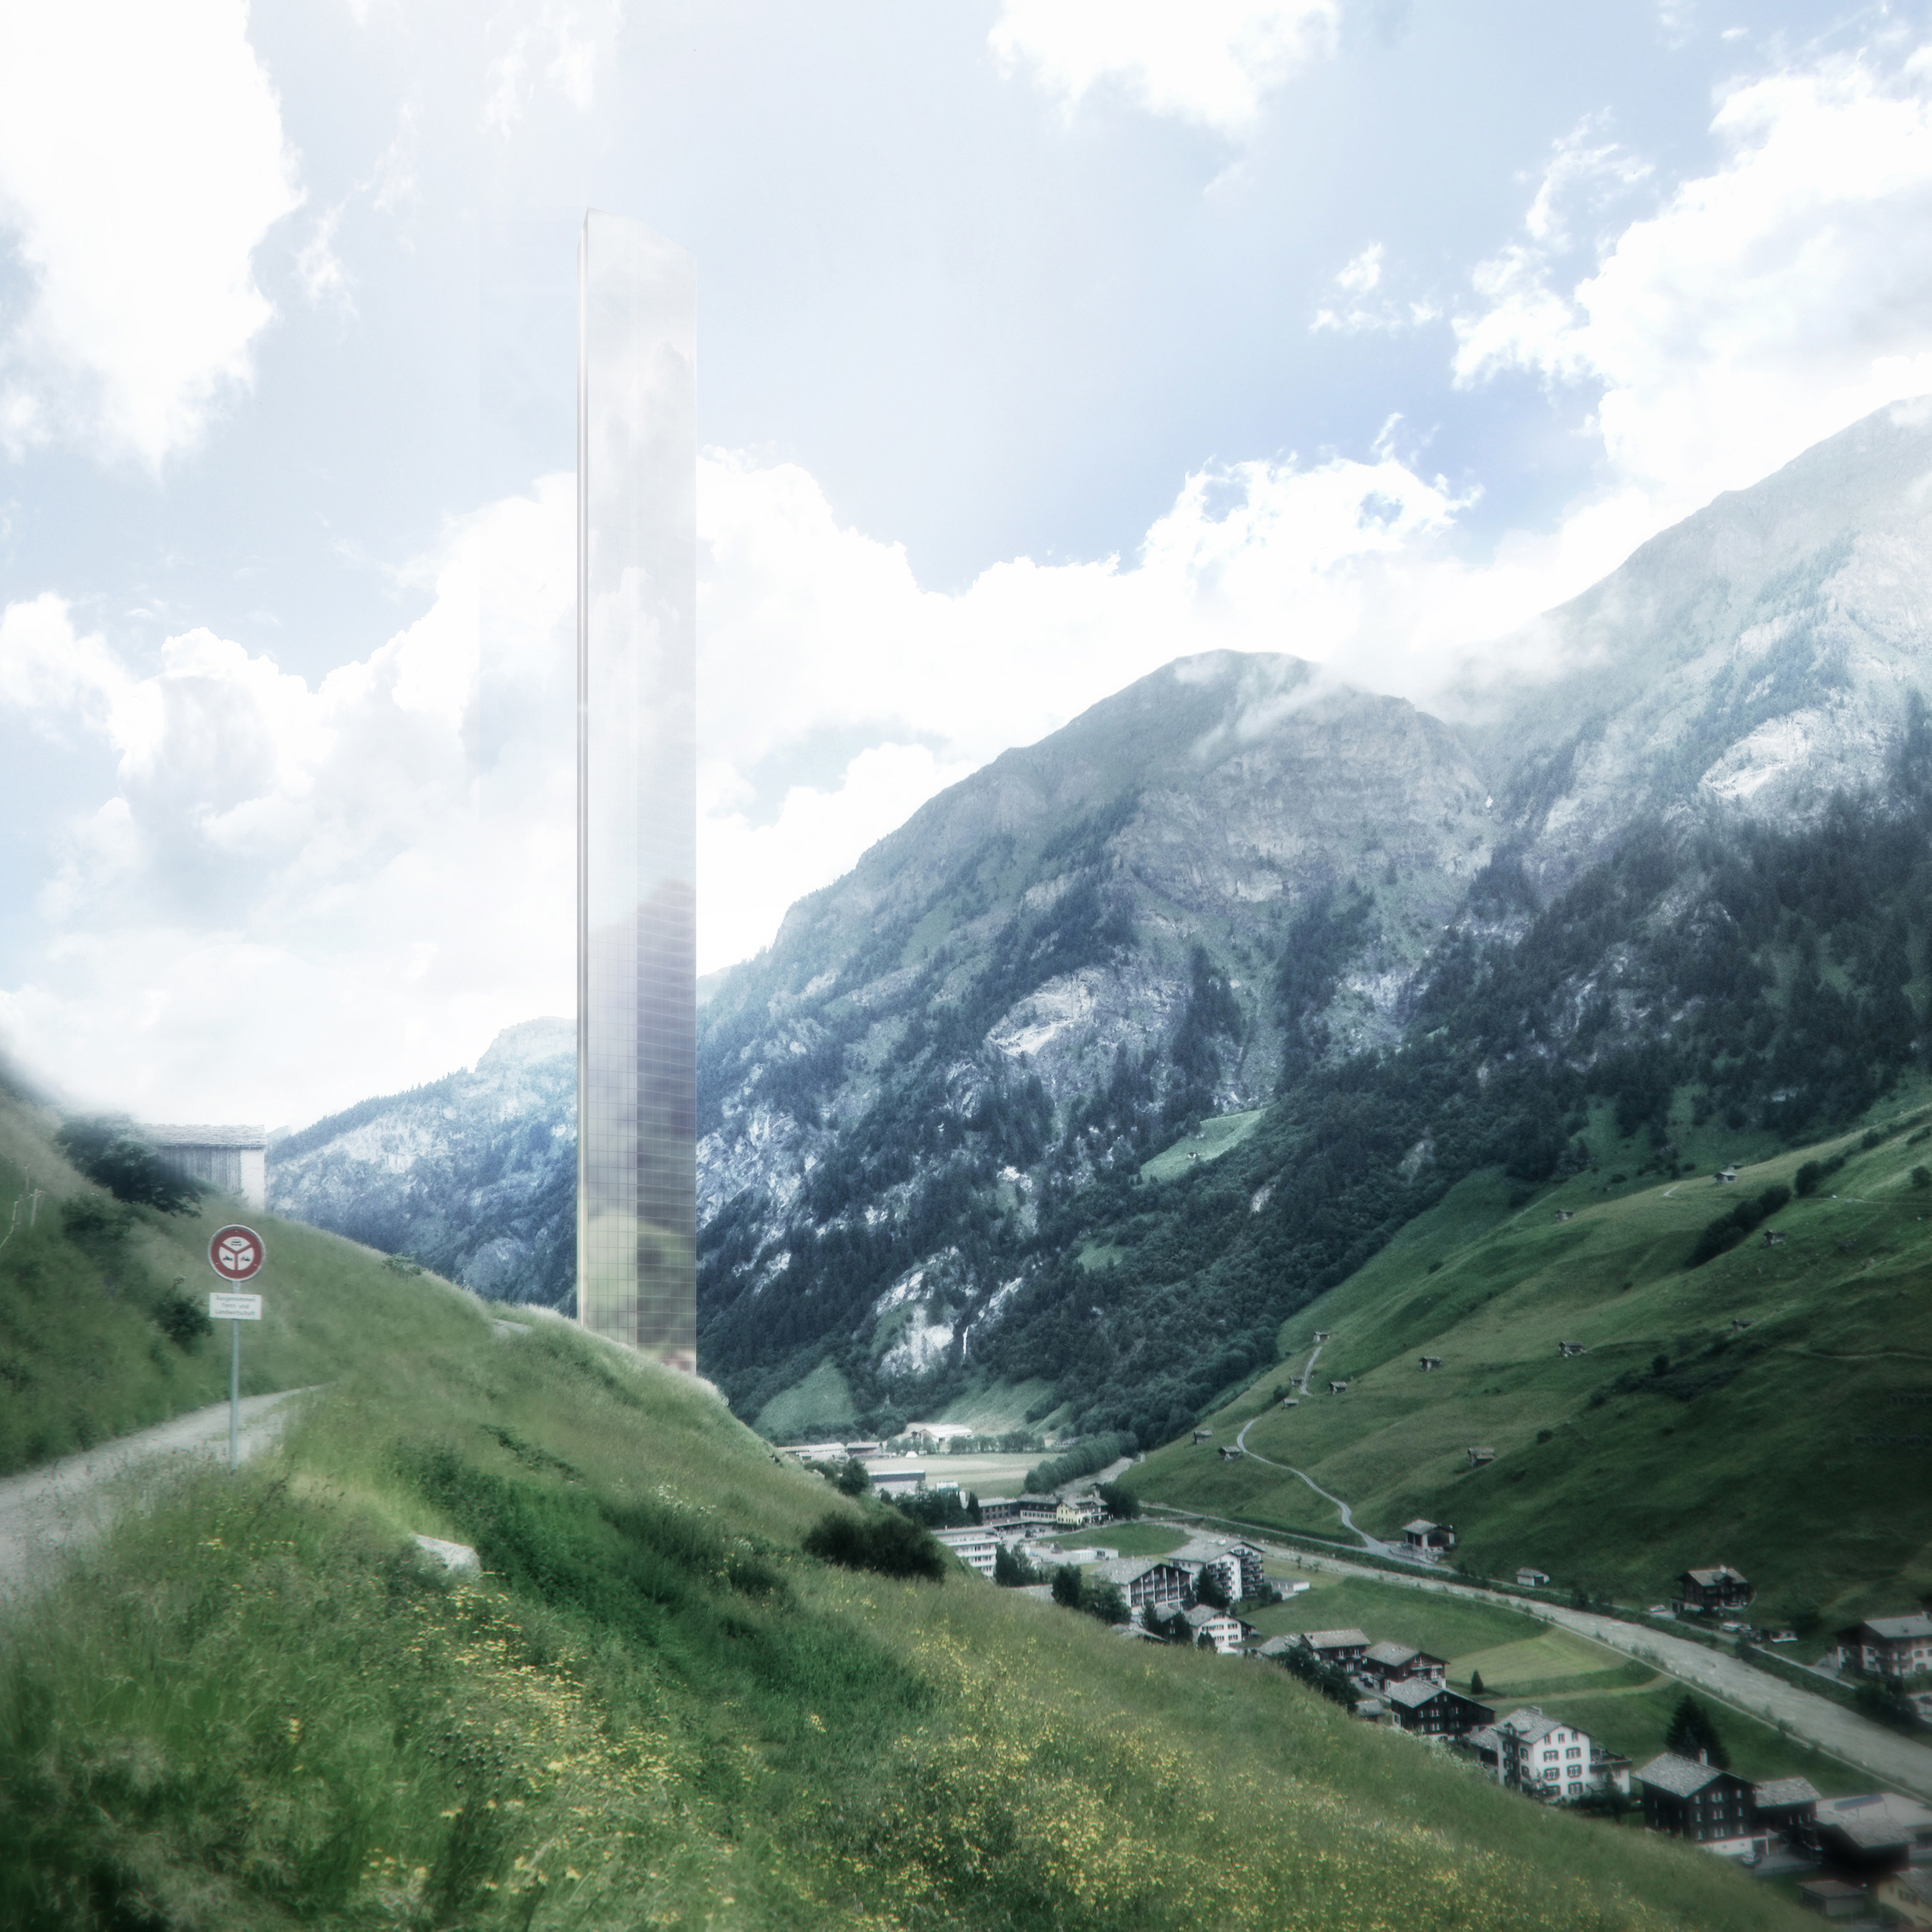 7132 Ltd in Partnership with Morphosis Architects, Unveils the Design for the New 7132 Hotel and Arrival in Vals, Switzerland